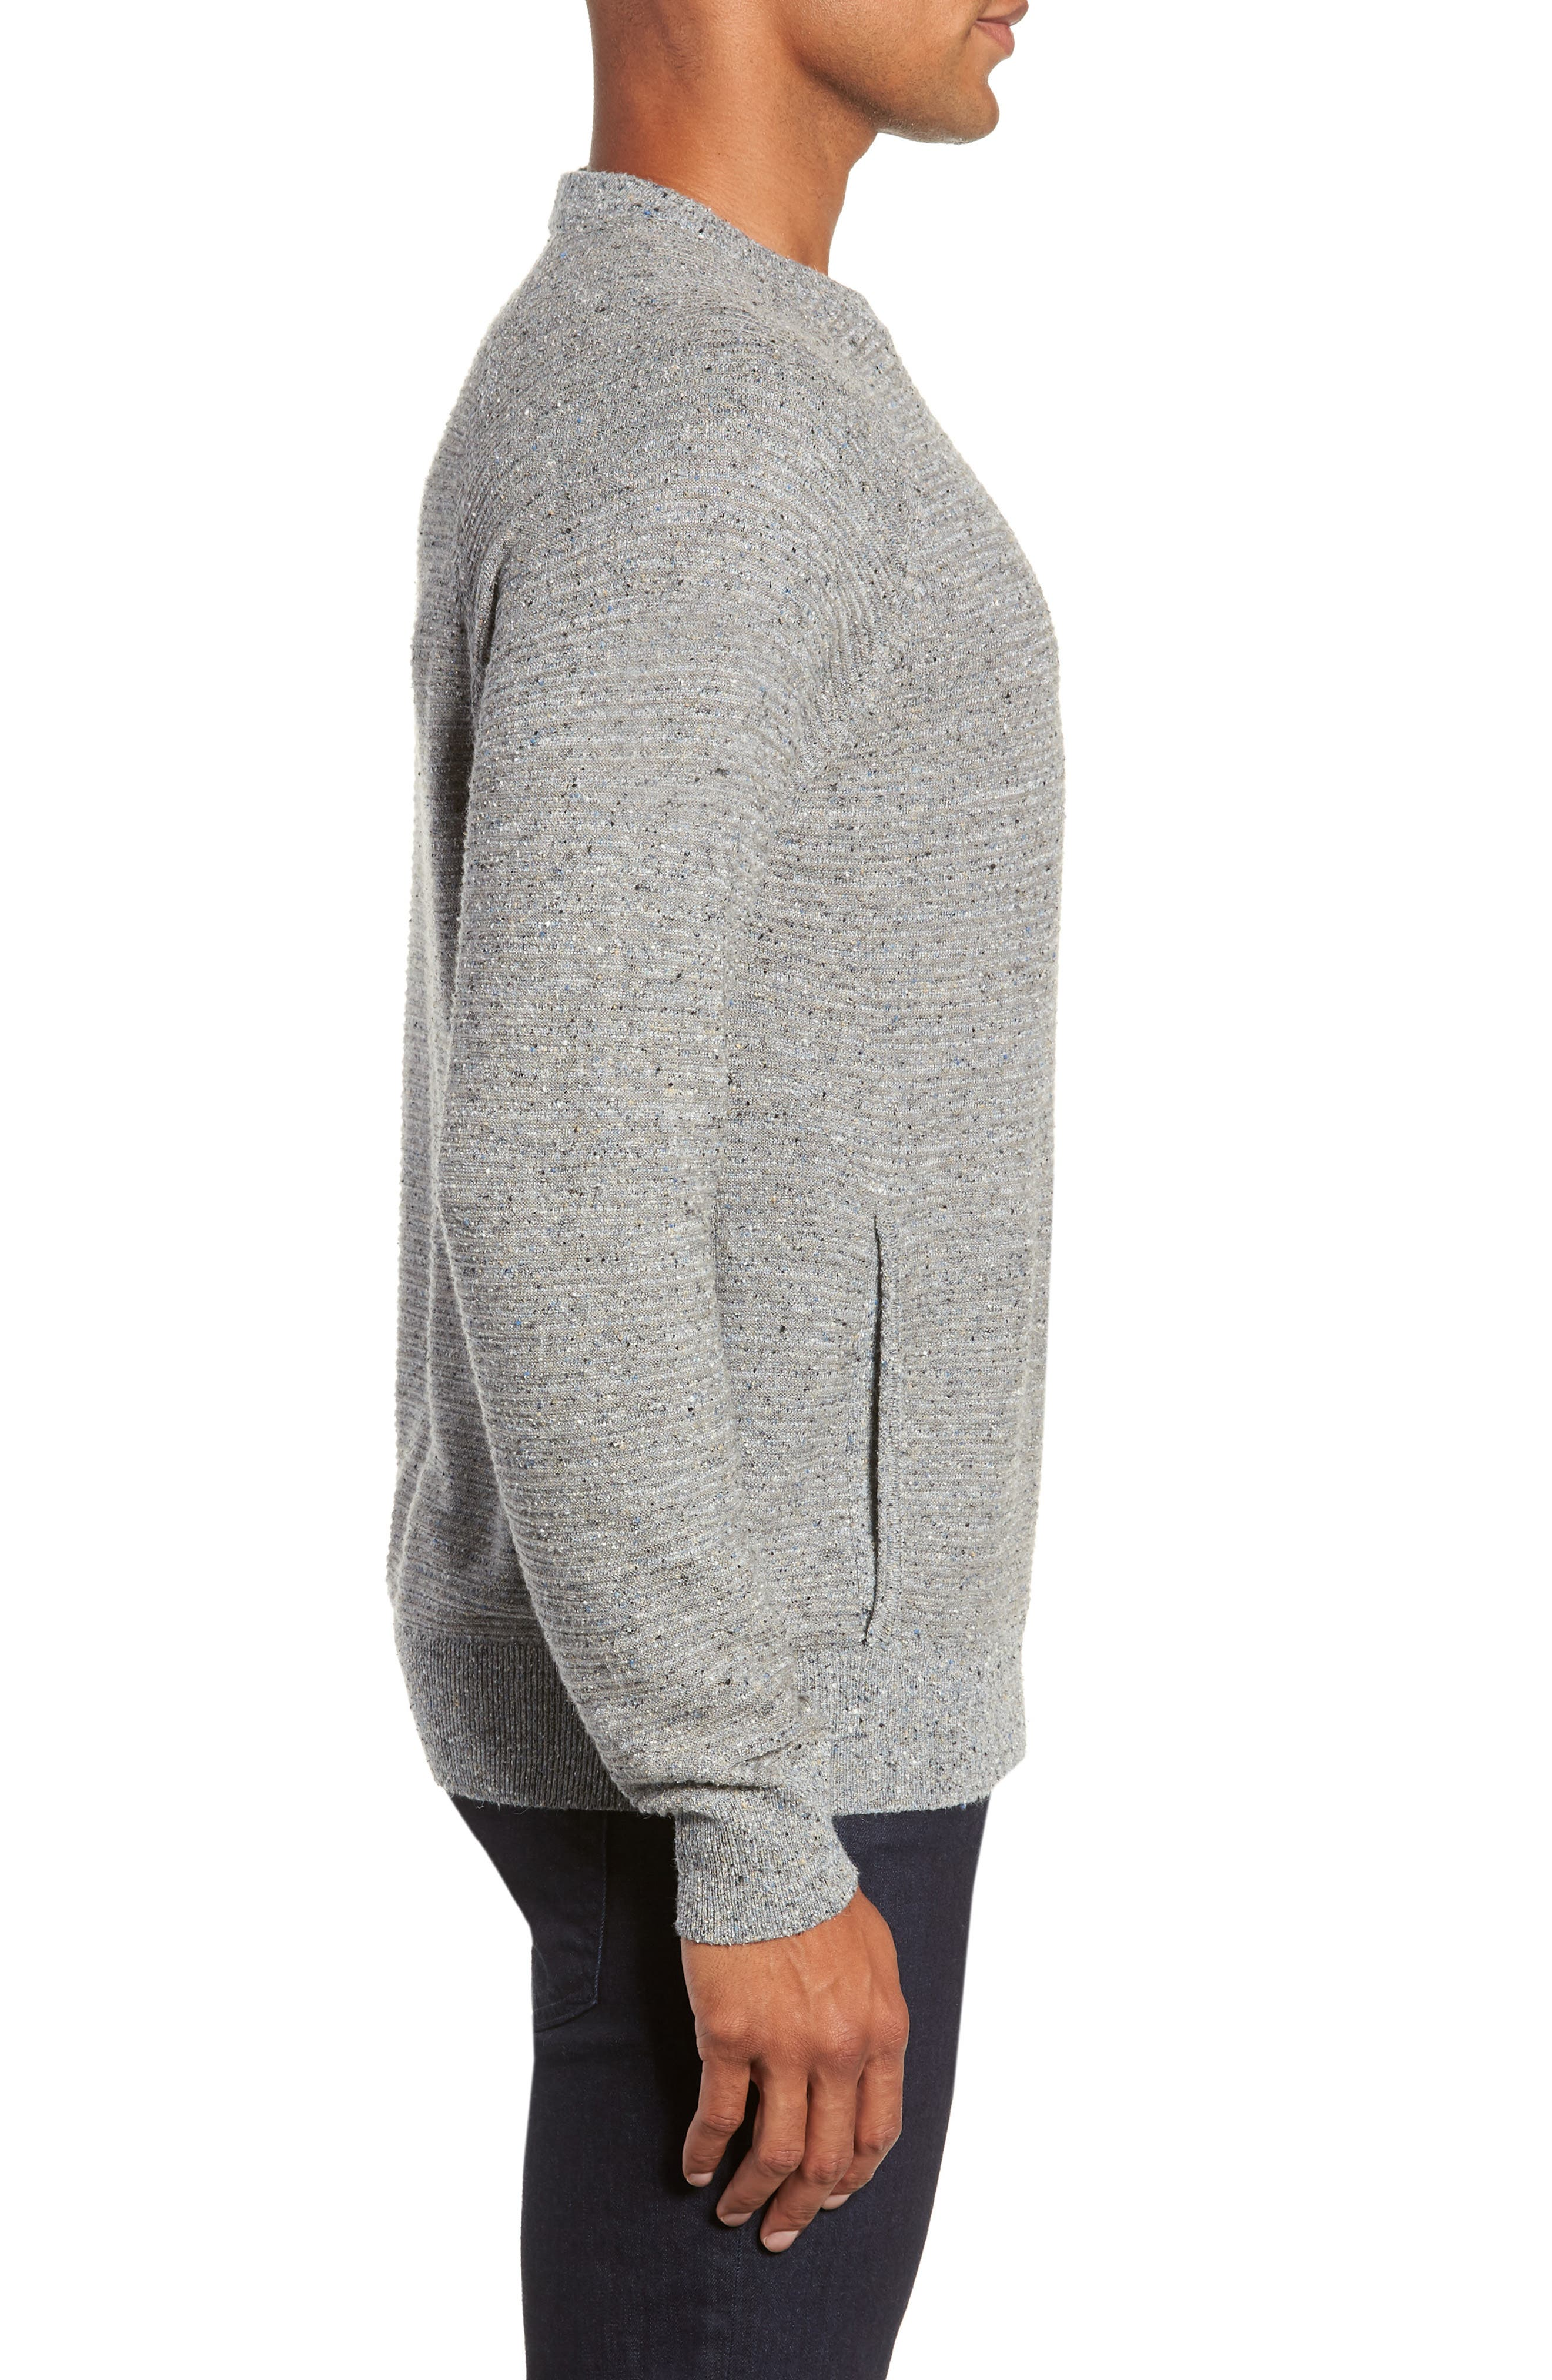 Speckle Stripe Sweater,                             Alternate thumbnail 3, color,                             GREY MIX